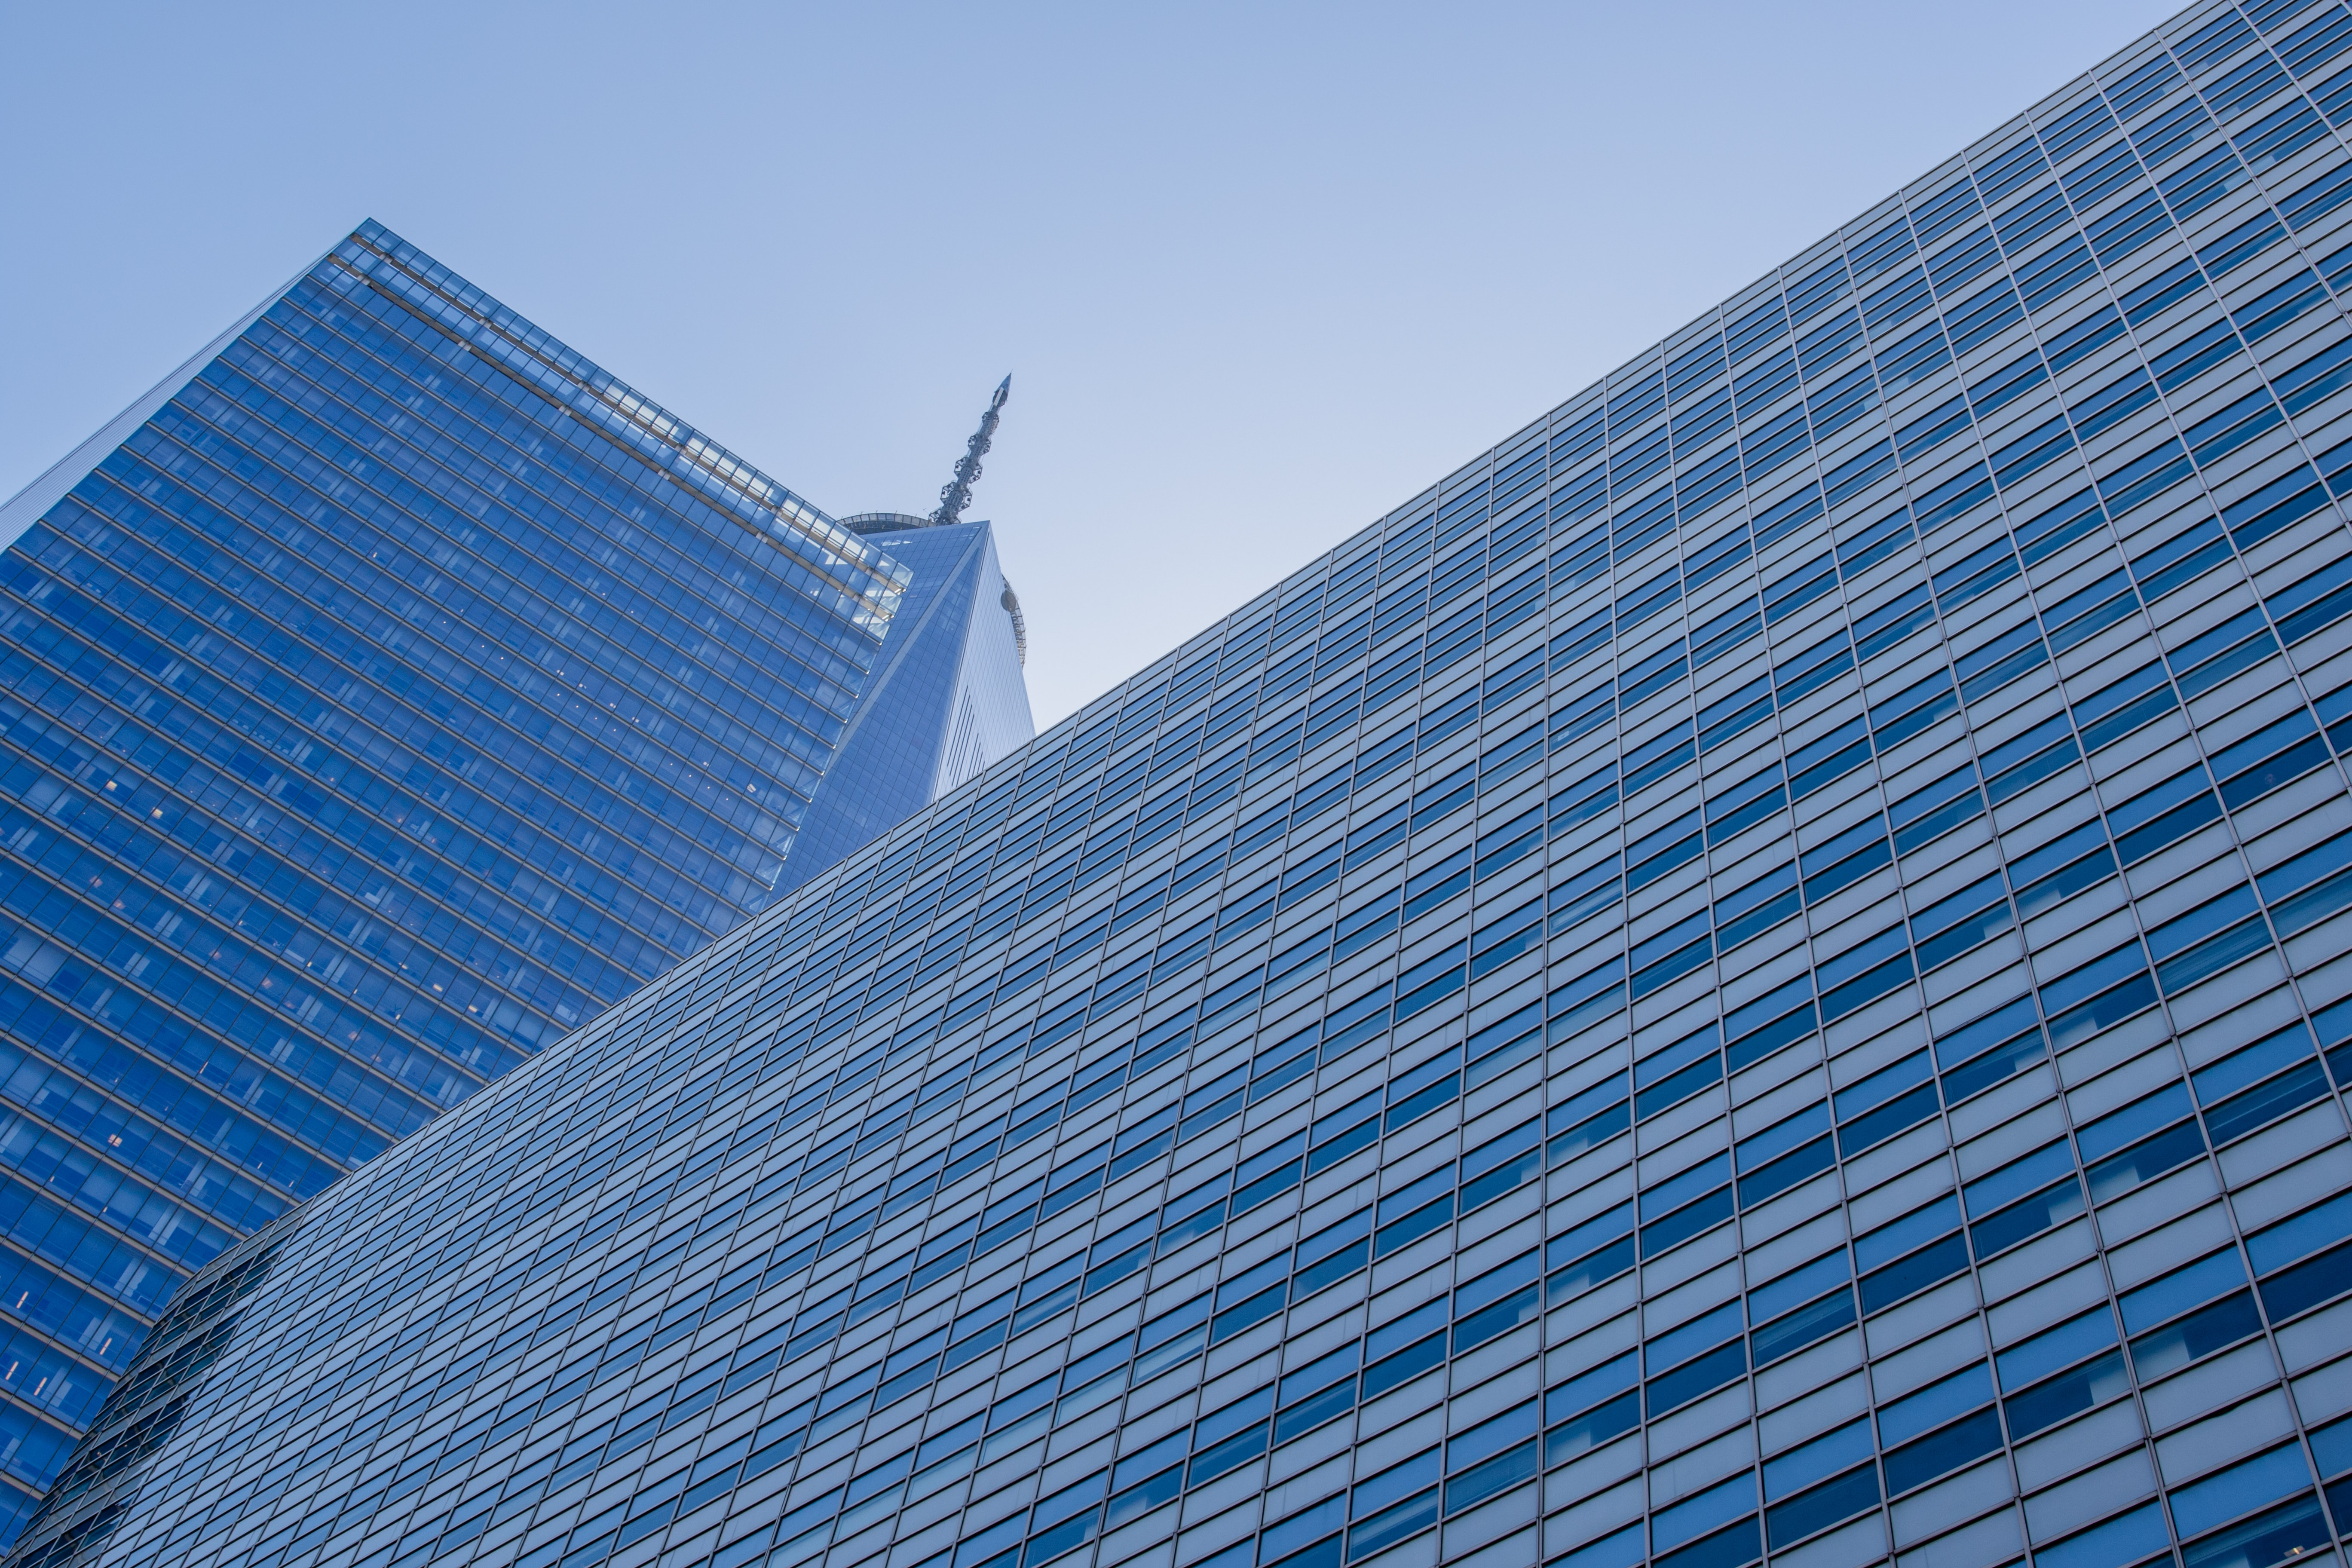 worm's-eye view photography of blue concrete building under clear blue sky